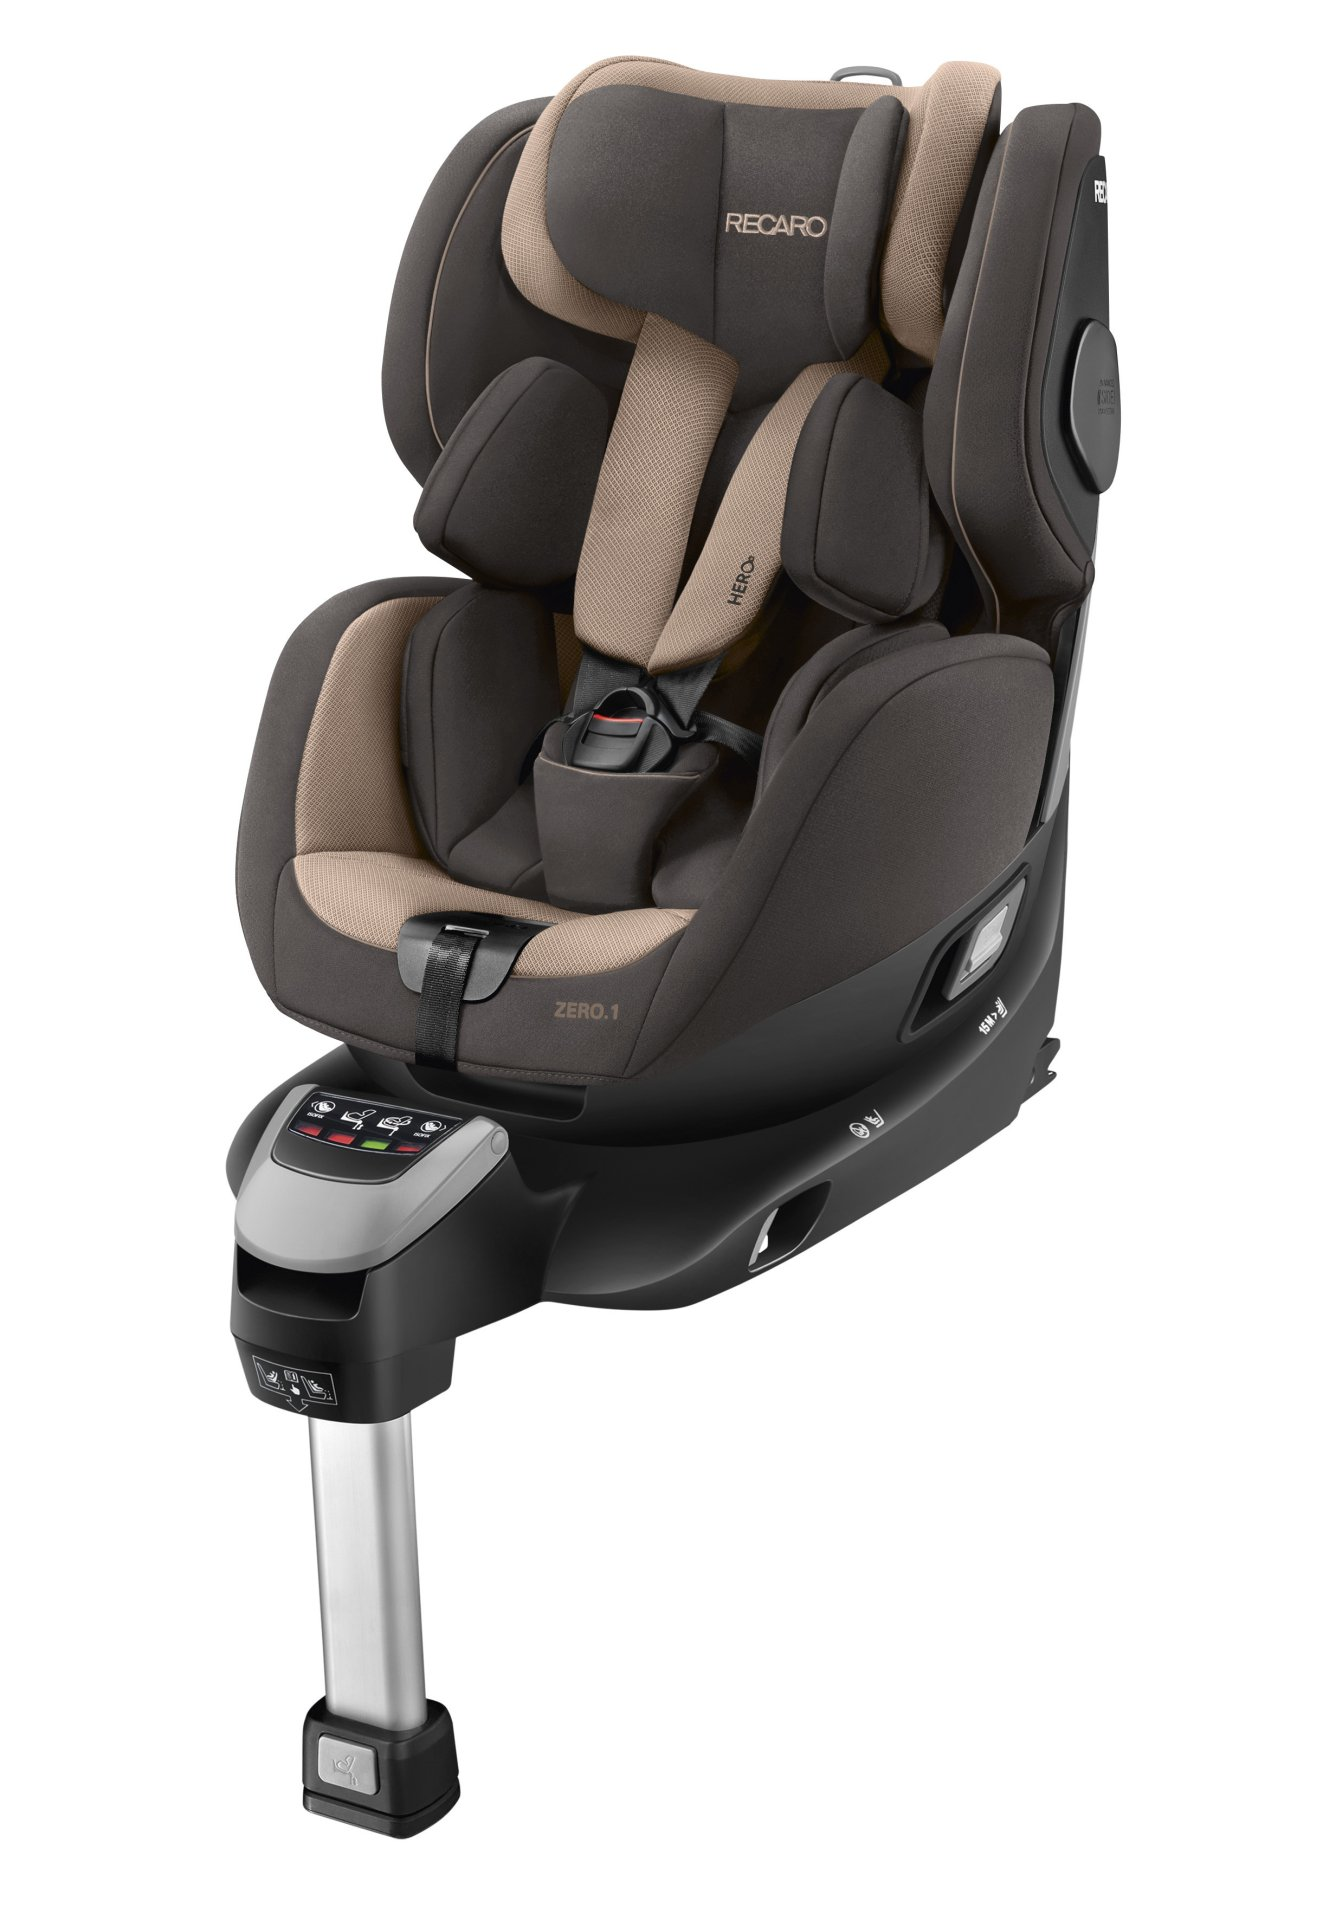 recaro reboard si ge d 39 enfant zero 1 i size inclu isofix base 2018 dakar sand acheter sur. Black Bedroom Furniture Sets. Home Design Ideas